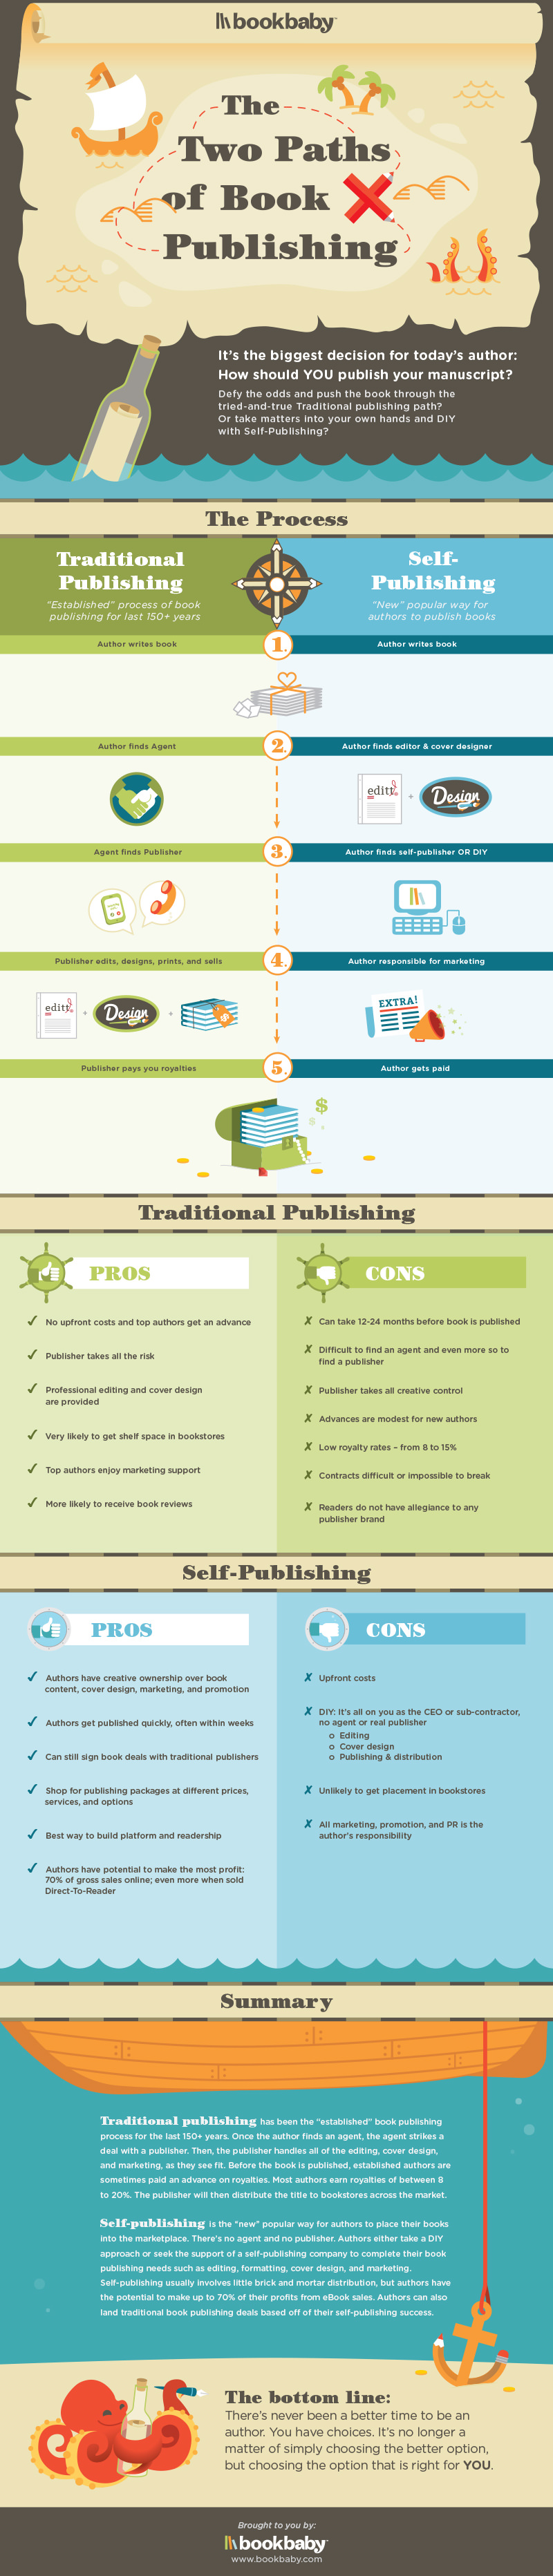 book publishing infographic